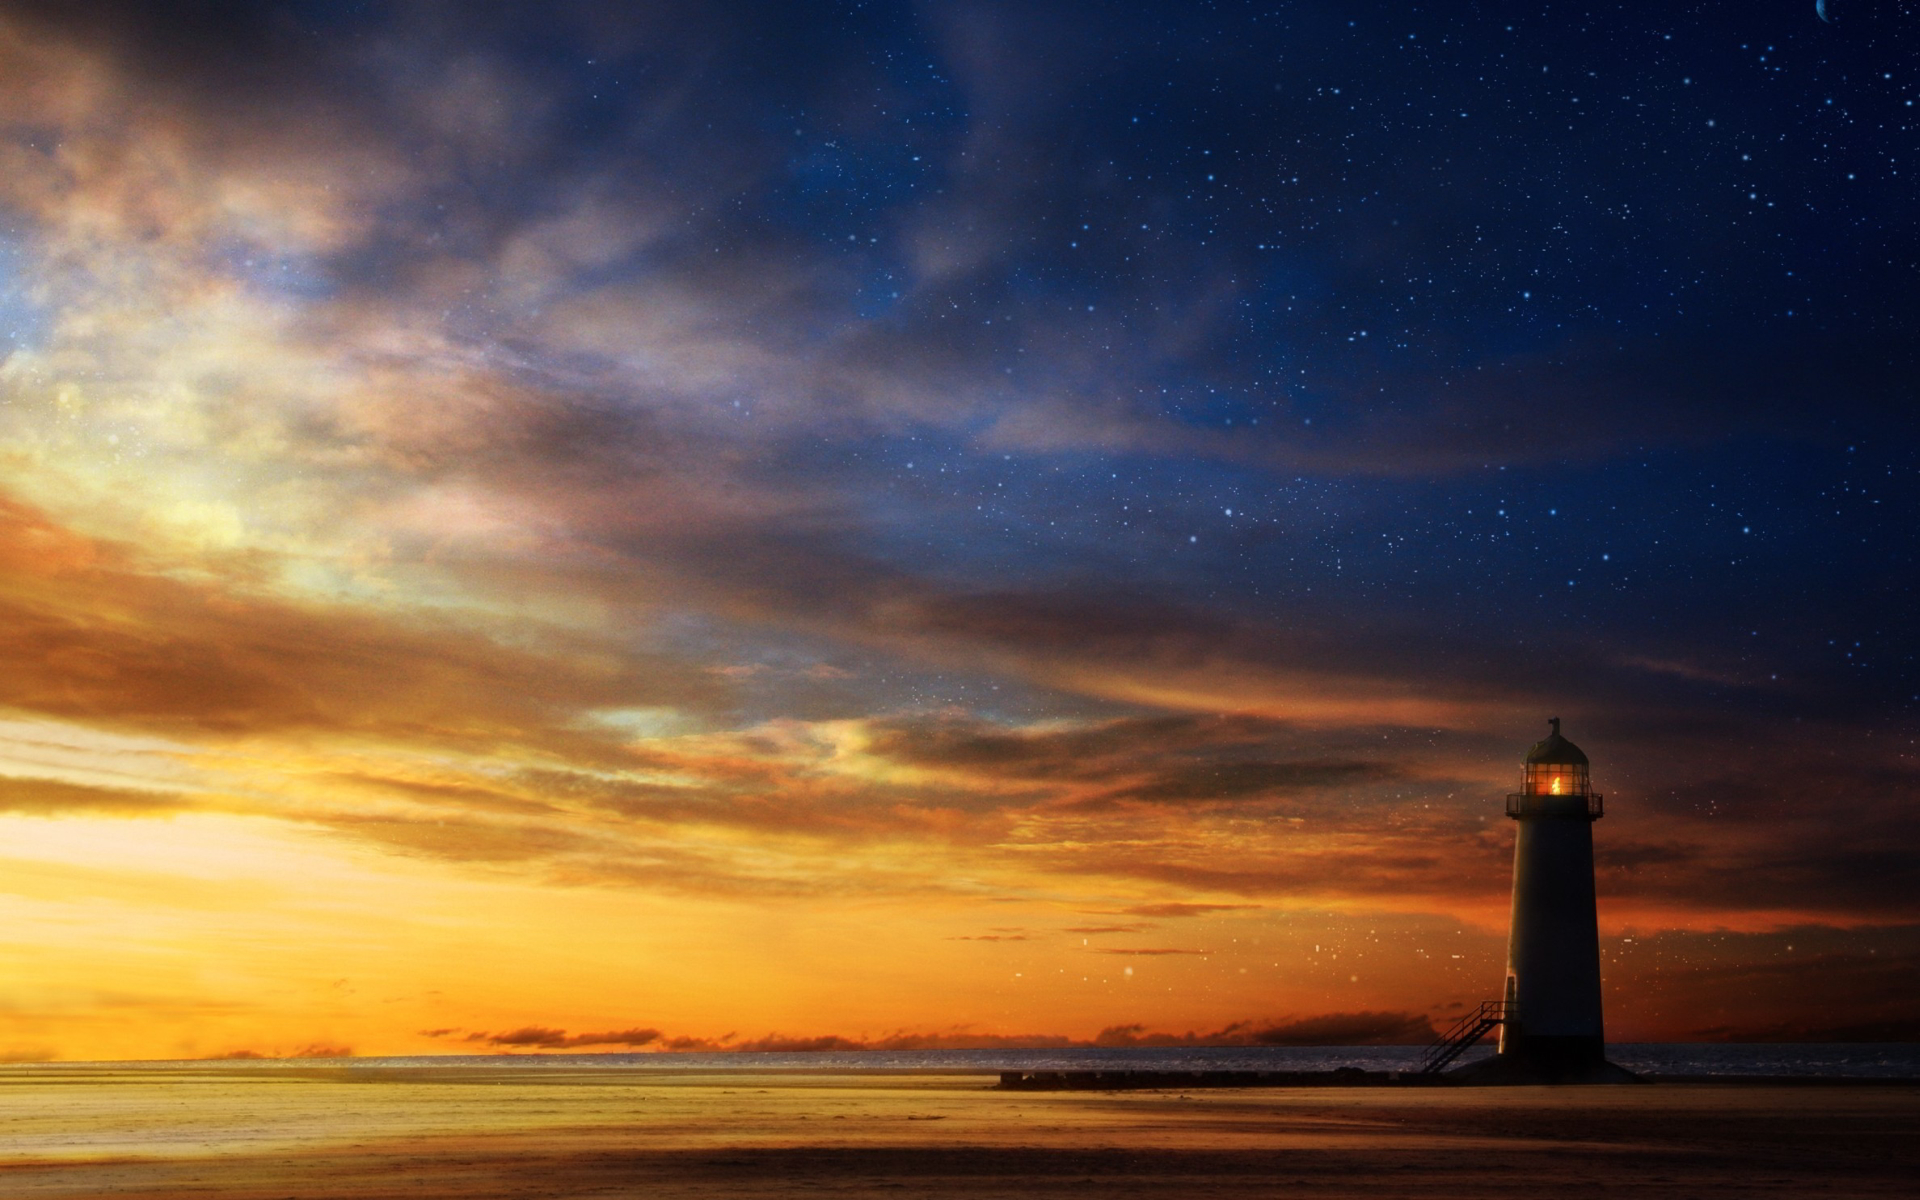 Lighthouse sunset sky